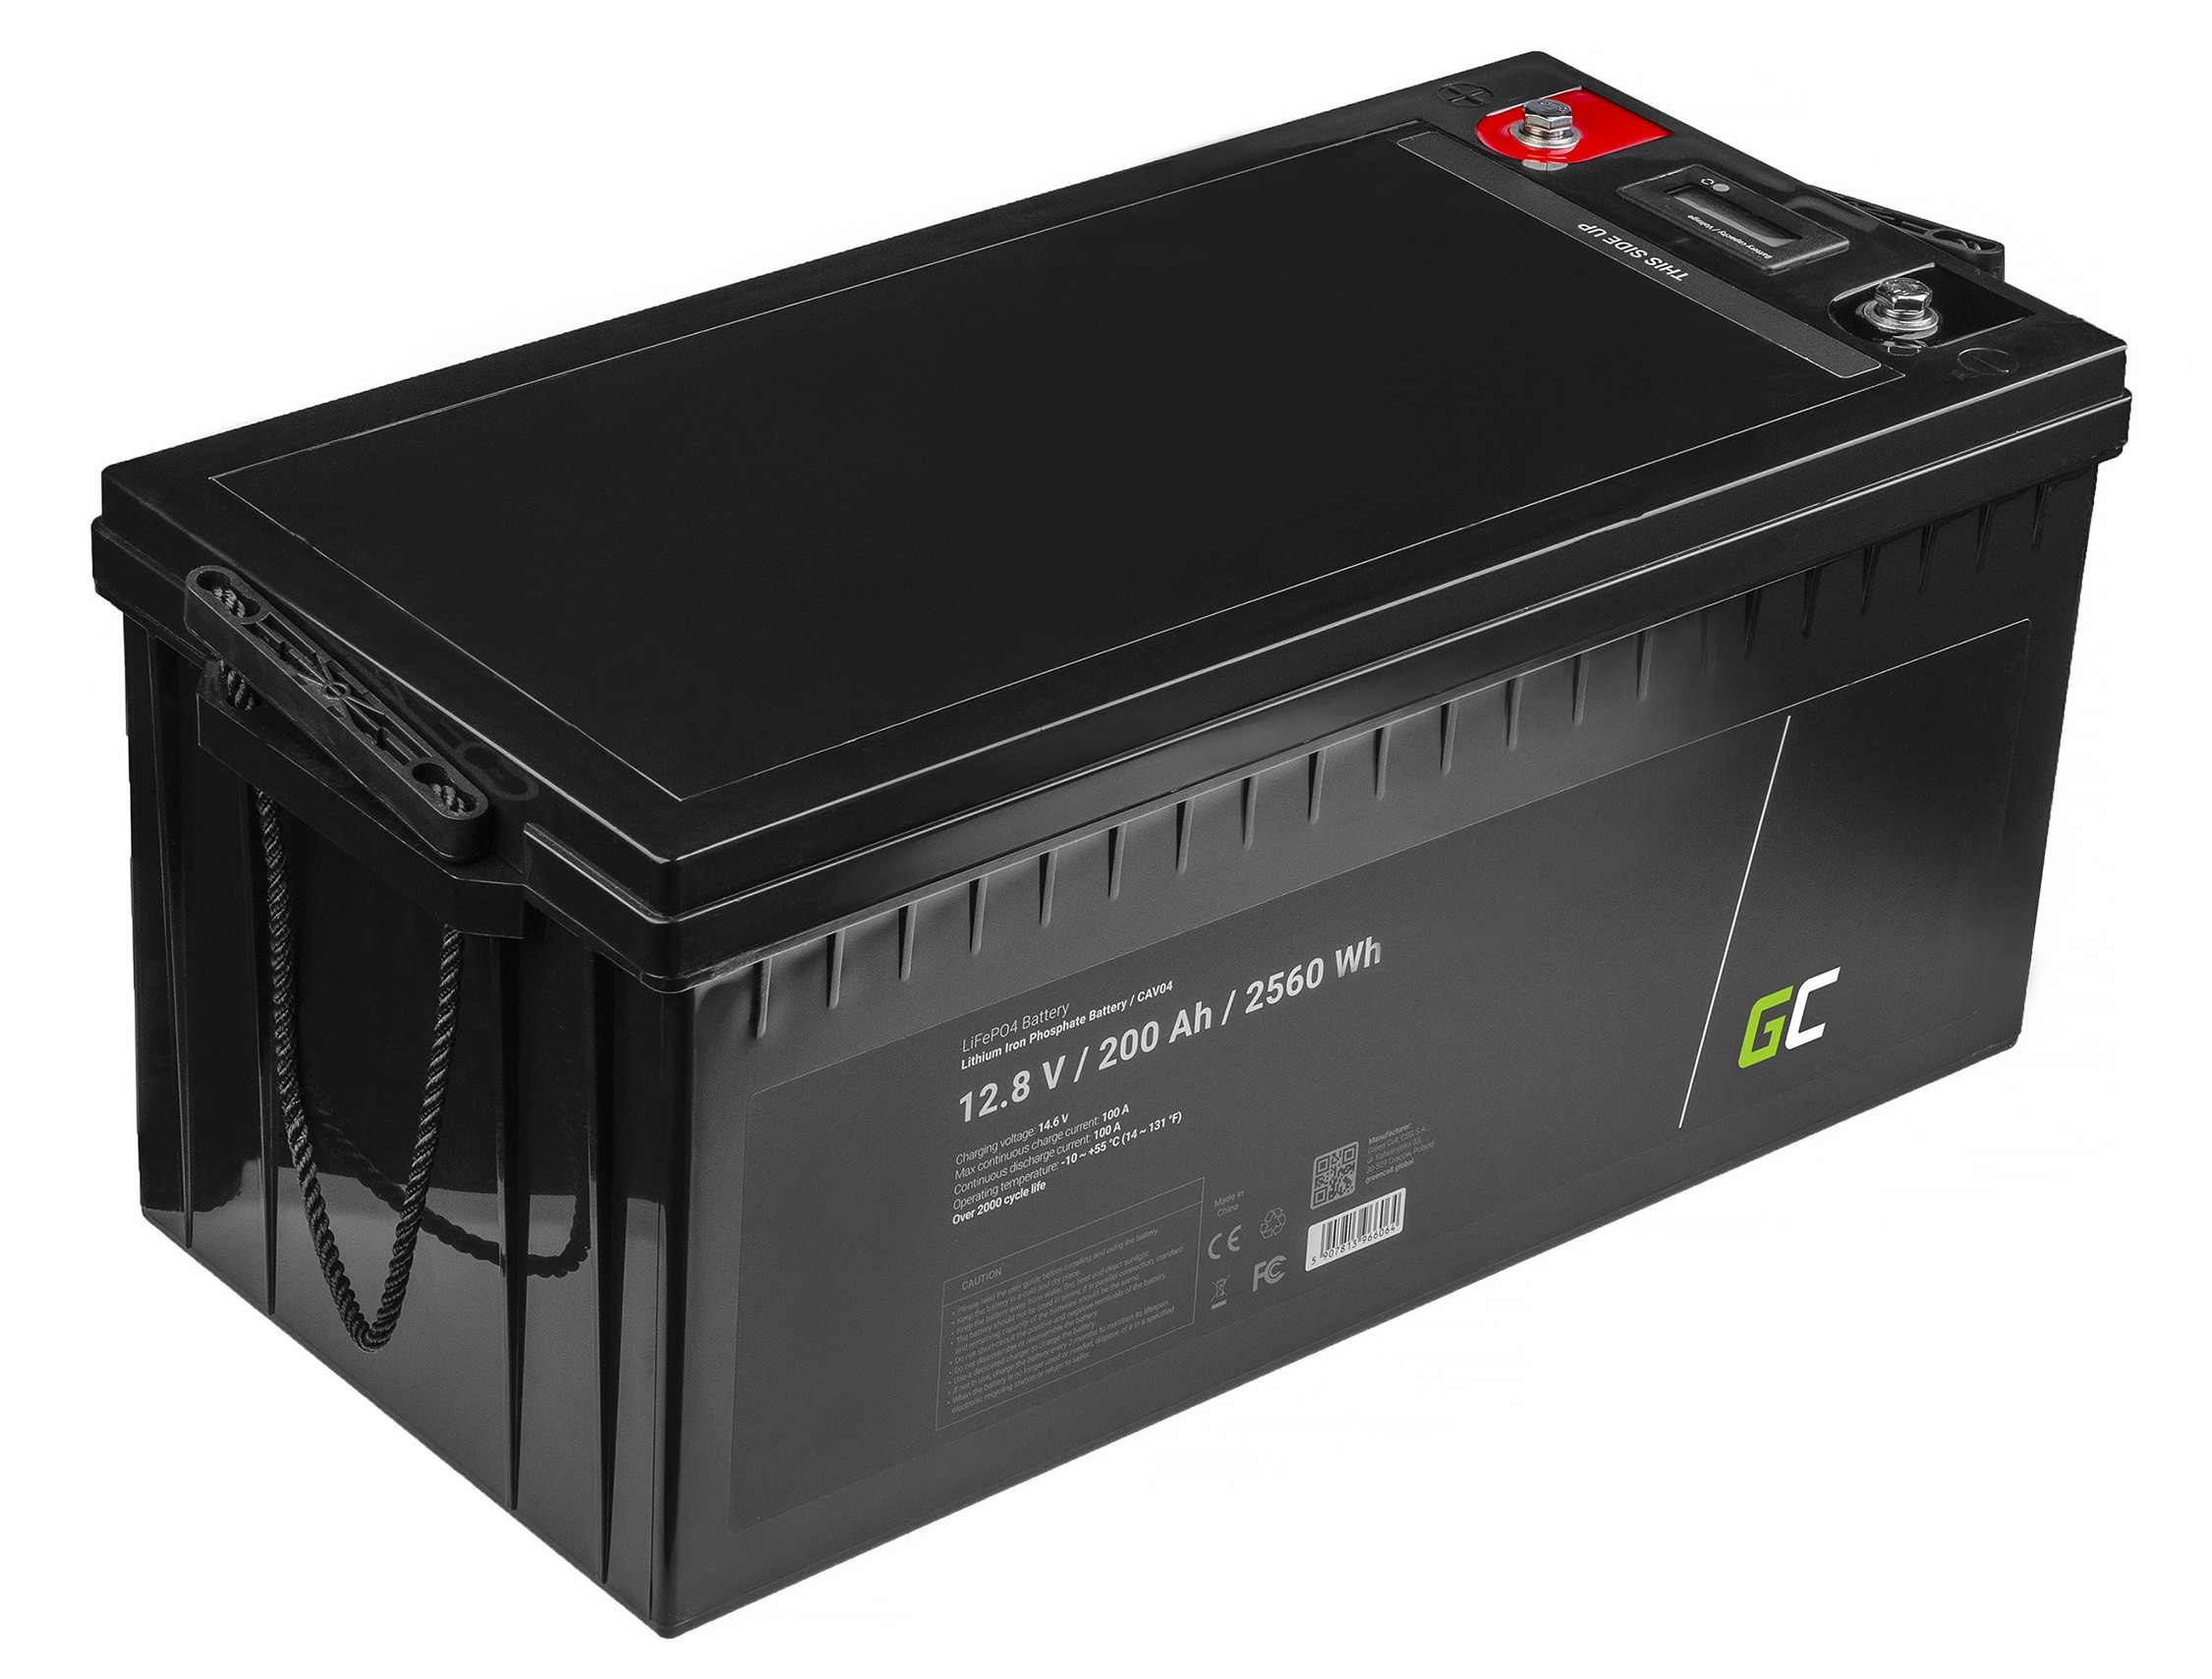 Green Cell LiFePO4 Baterie 200Ah 12.8V 2560Wh